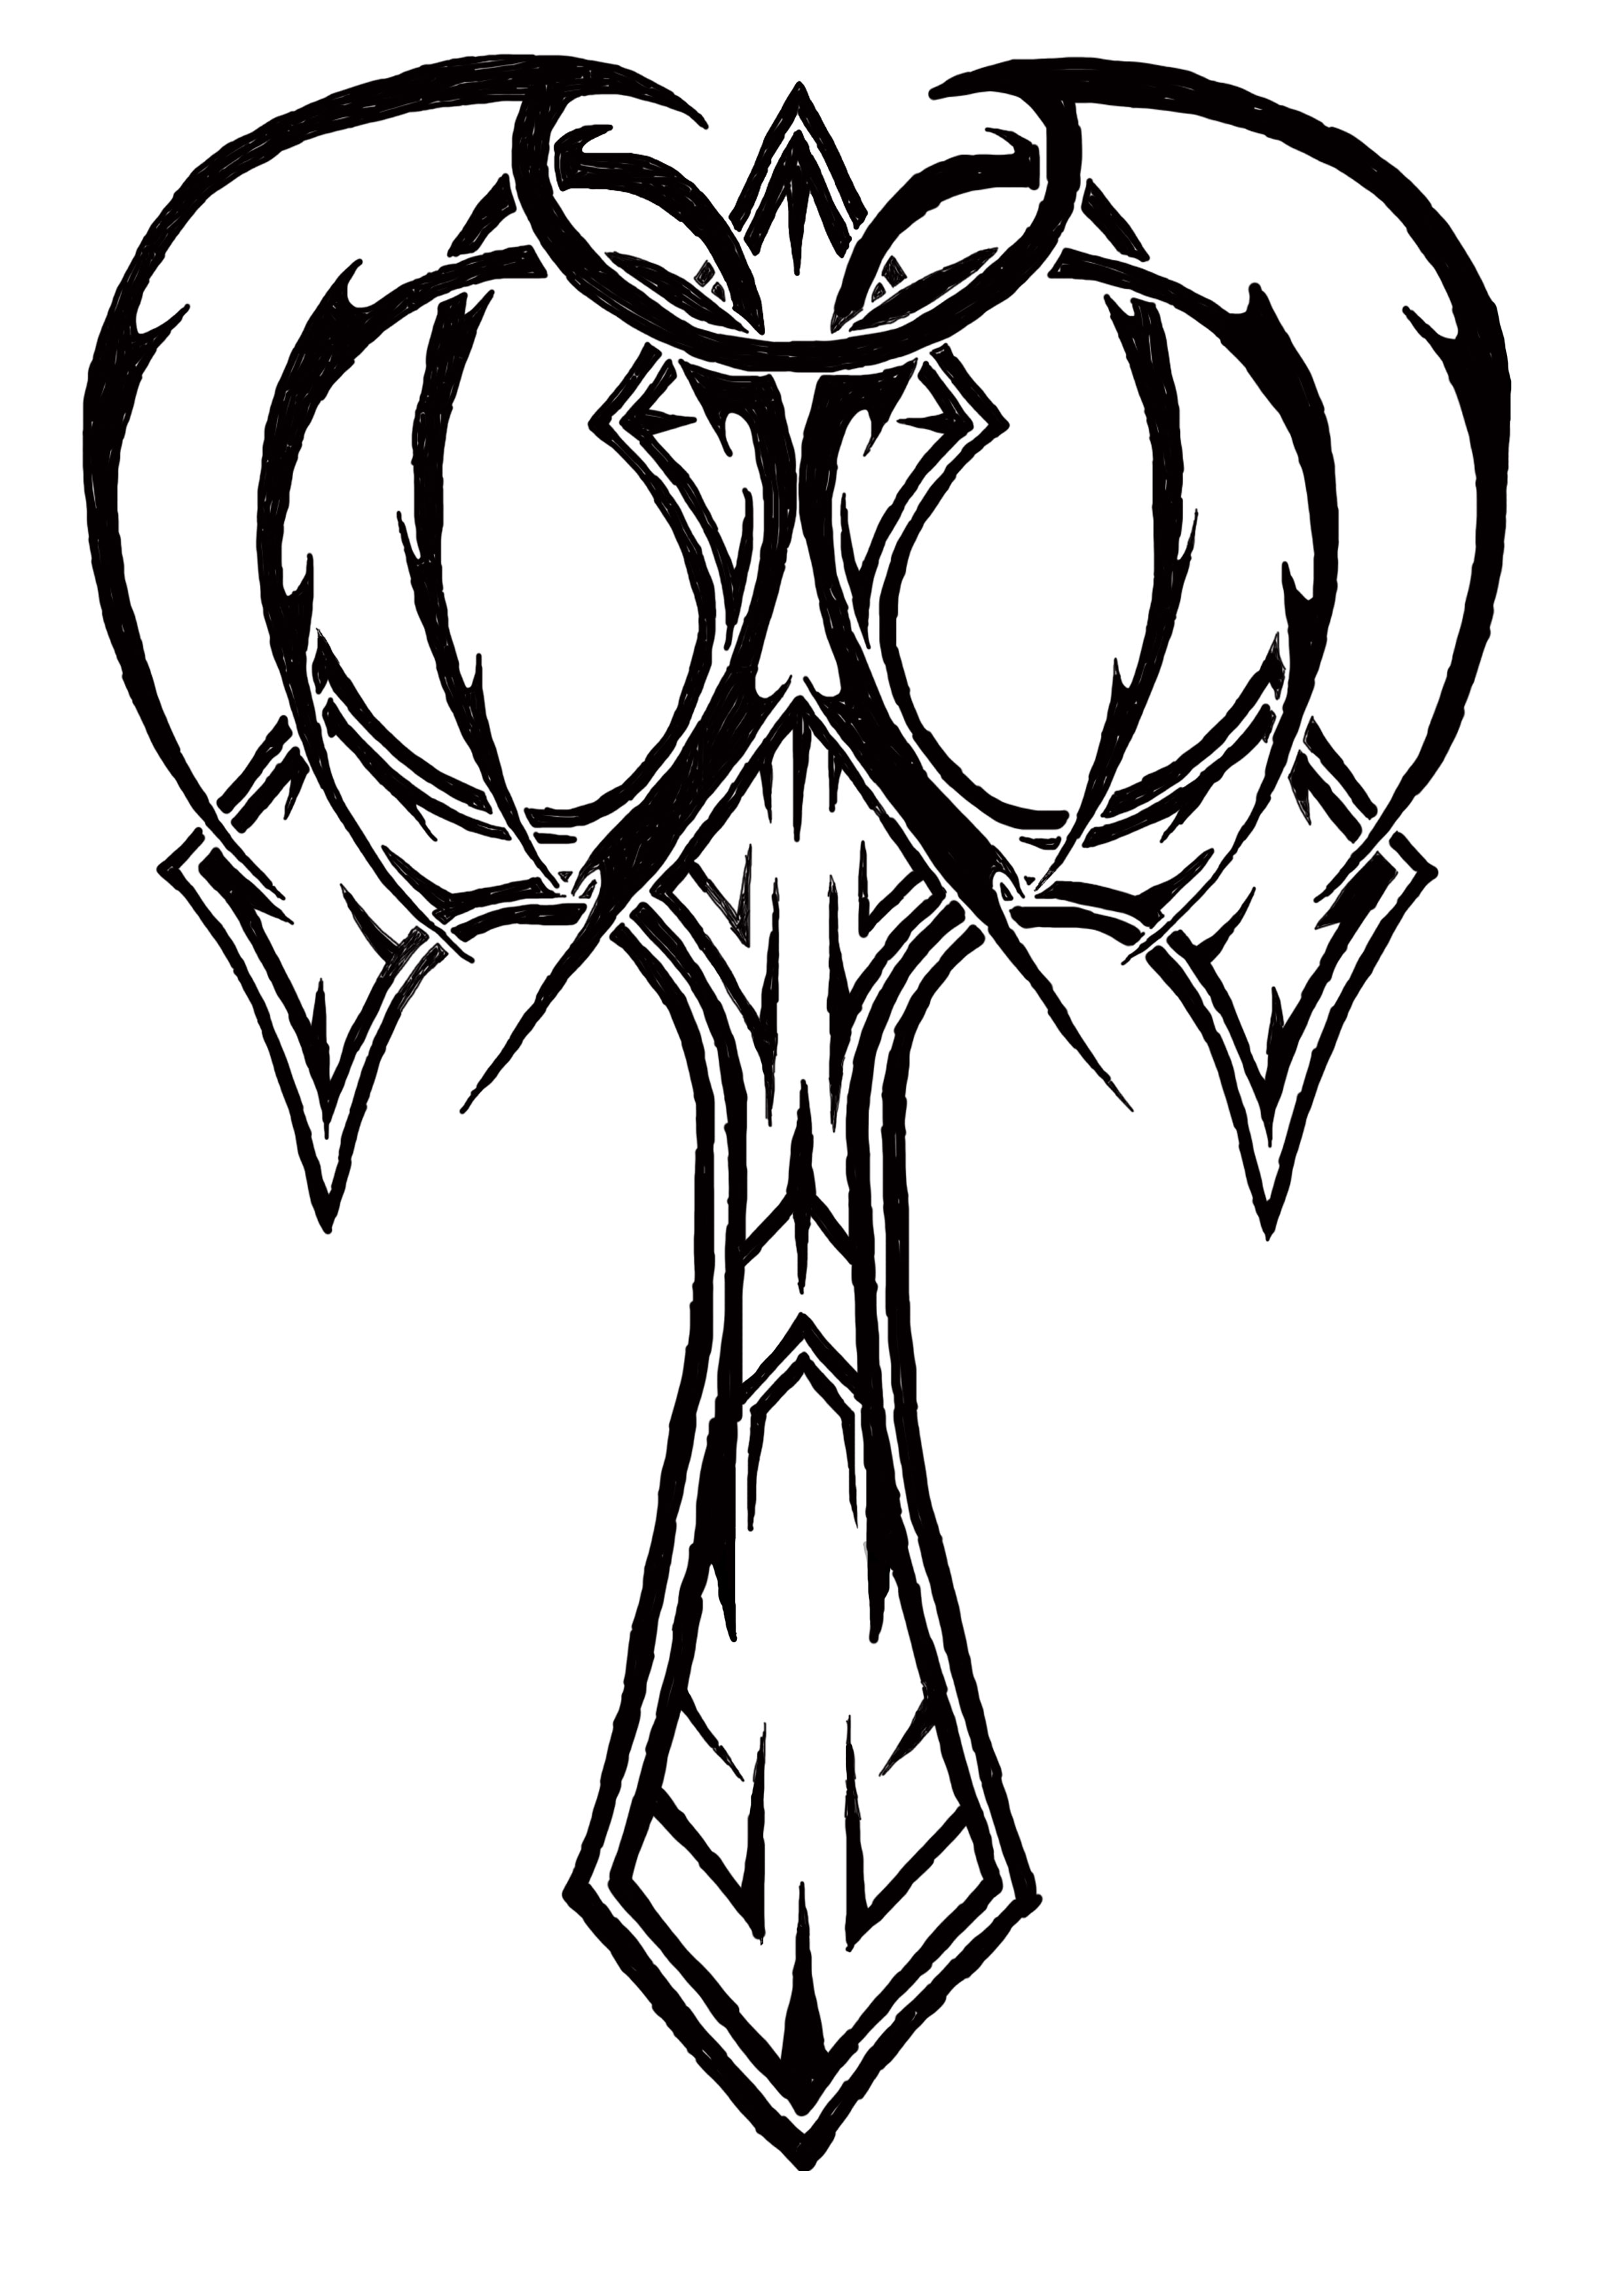 Cool Cross Designs To Draw - ClipArt Best